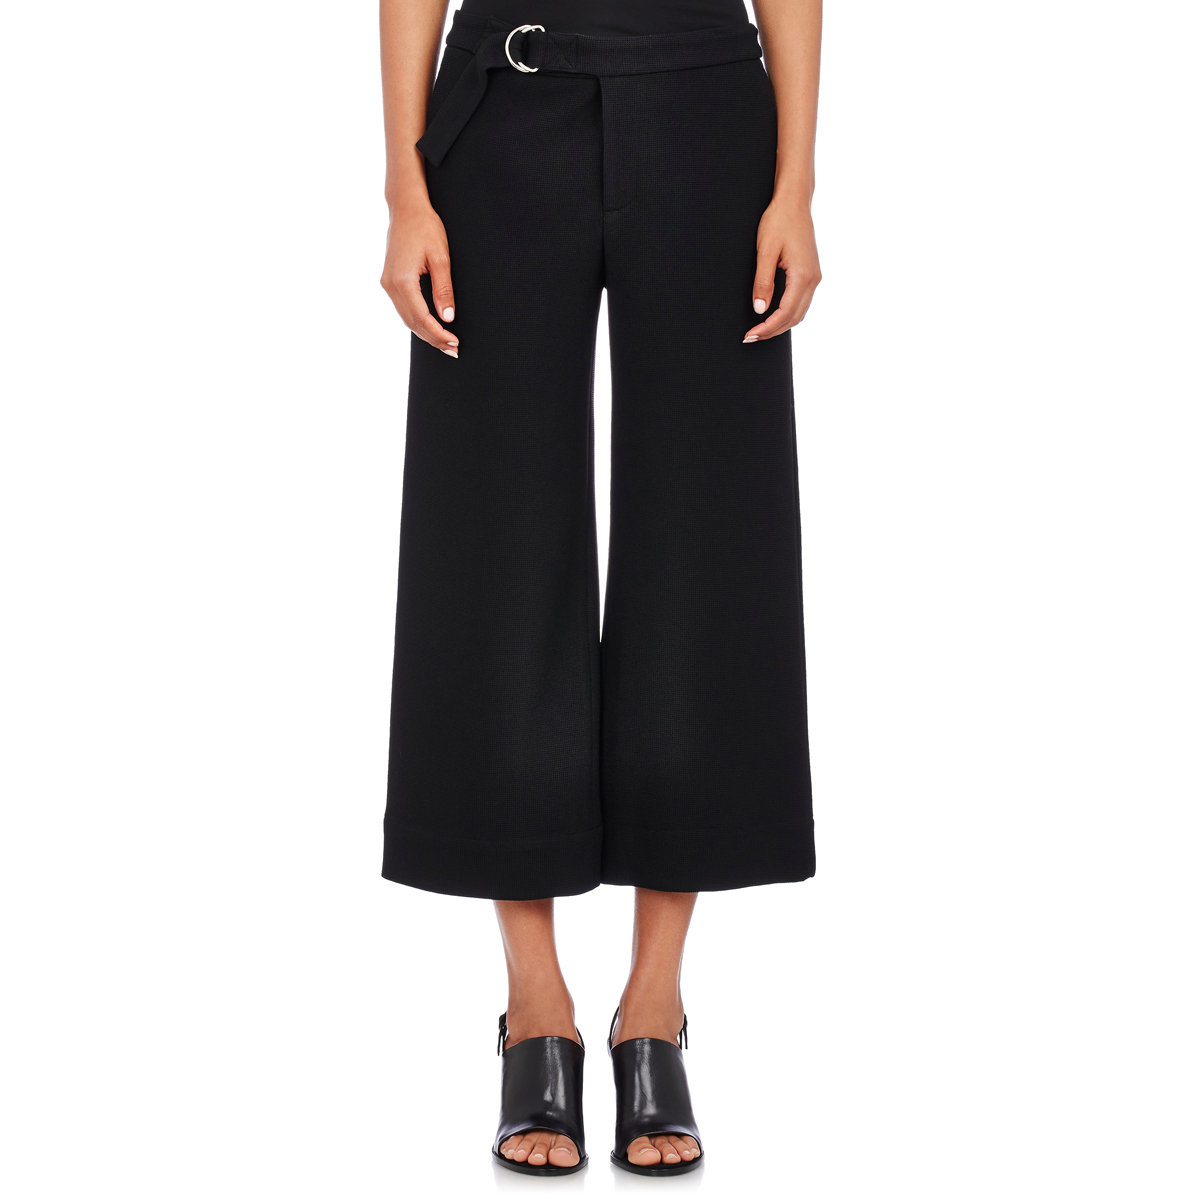 The Corduroy Etta Wide Leg Crop Jeans $ $ $ AYR The Blush Pants $ $ $ Mara Hoffman Nellie Alpaca Pants Canni Corduroy Slouchy Wide Leg Crop Pants $ $ $ Derek Lam 10 Crosby Cropped Flare Trousers $ $ $ Veronica Beard Cormac Trousers.